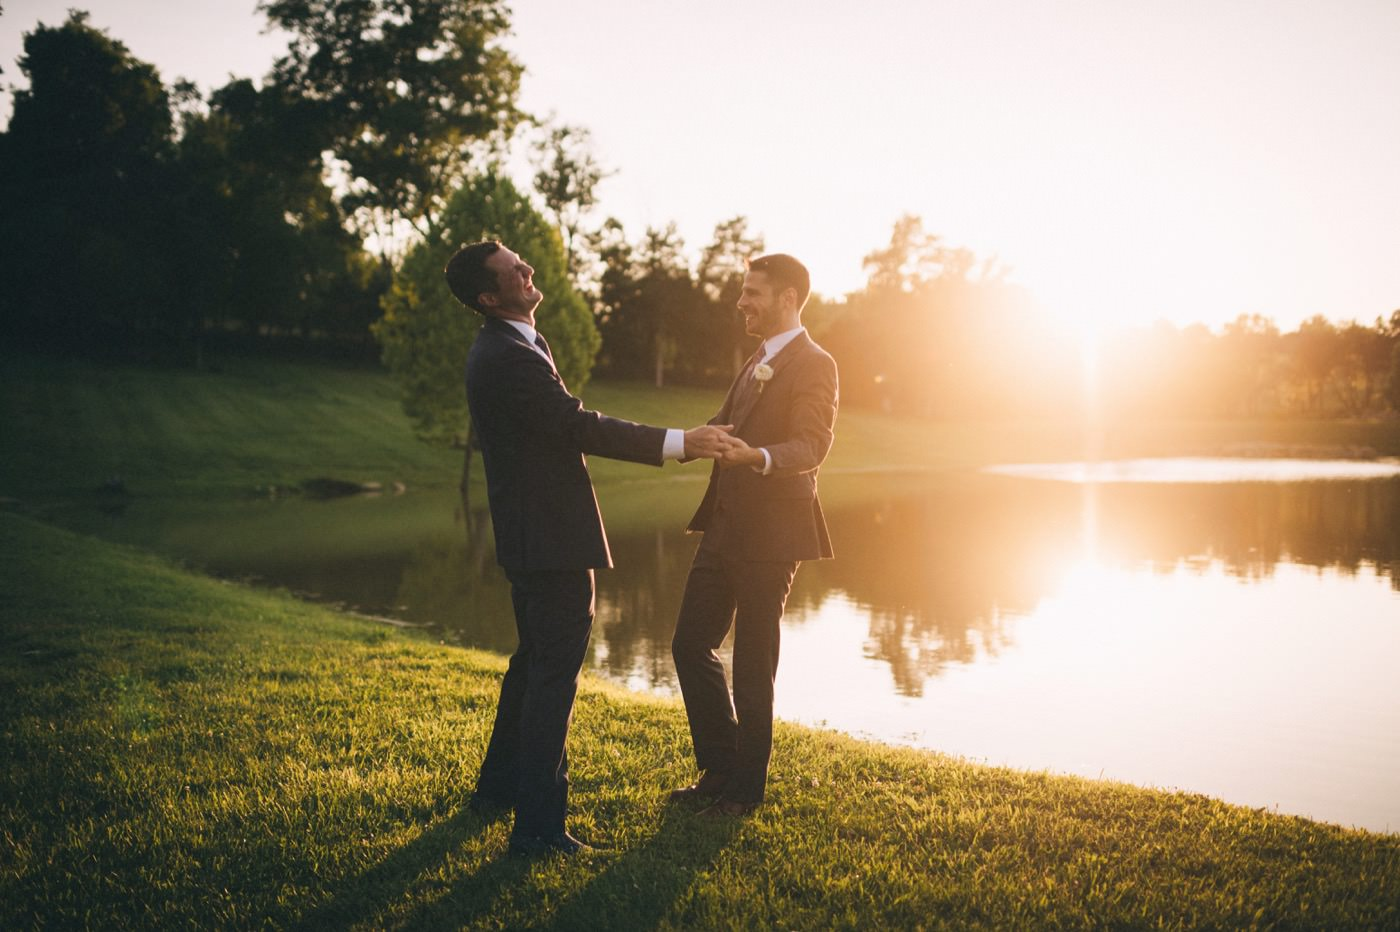 Will-Nate-Louisville-LGBTQ-Pride-Month-Kentucky-Wedding-By-Sarah-Katherine-Davis-Photograpy0062.JPG